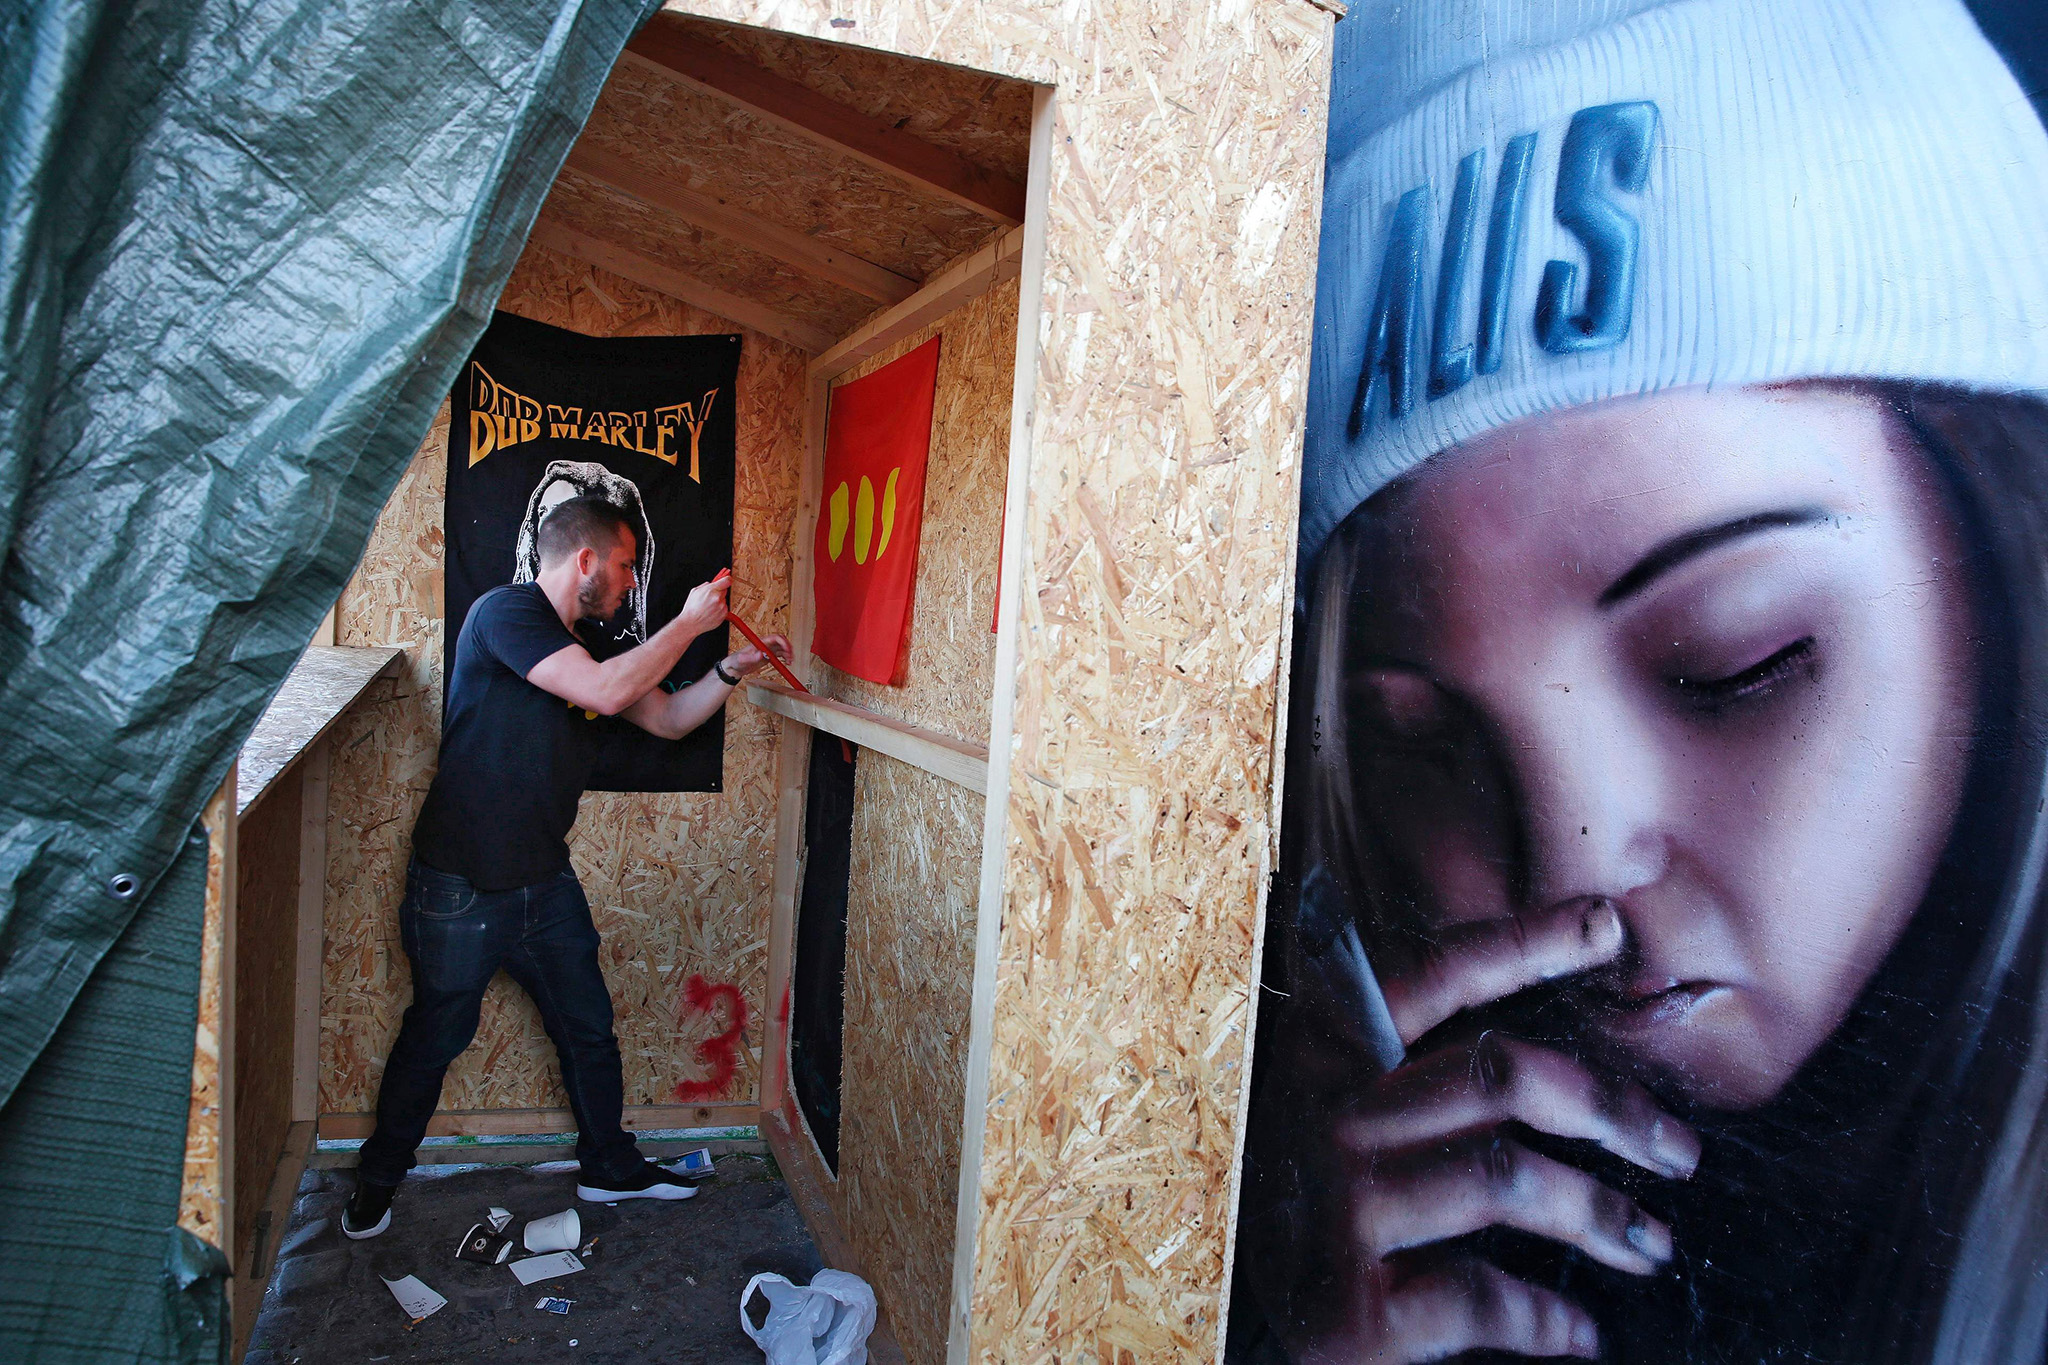 A resident clears out the hash vending stalls in the Freetown Christiania neighborhood of Copenhagen,